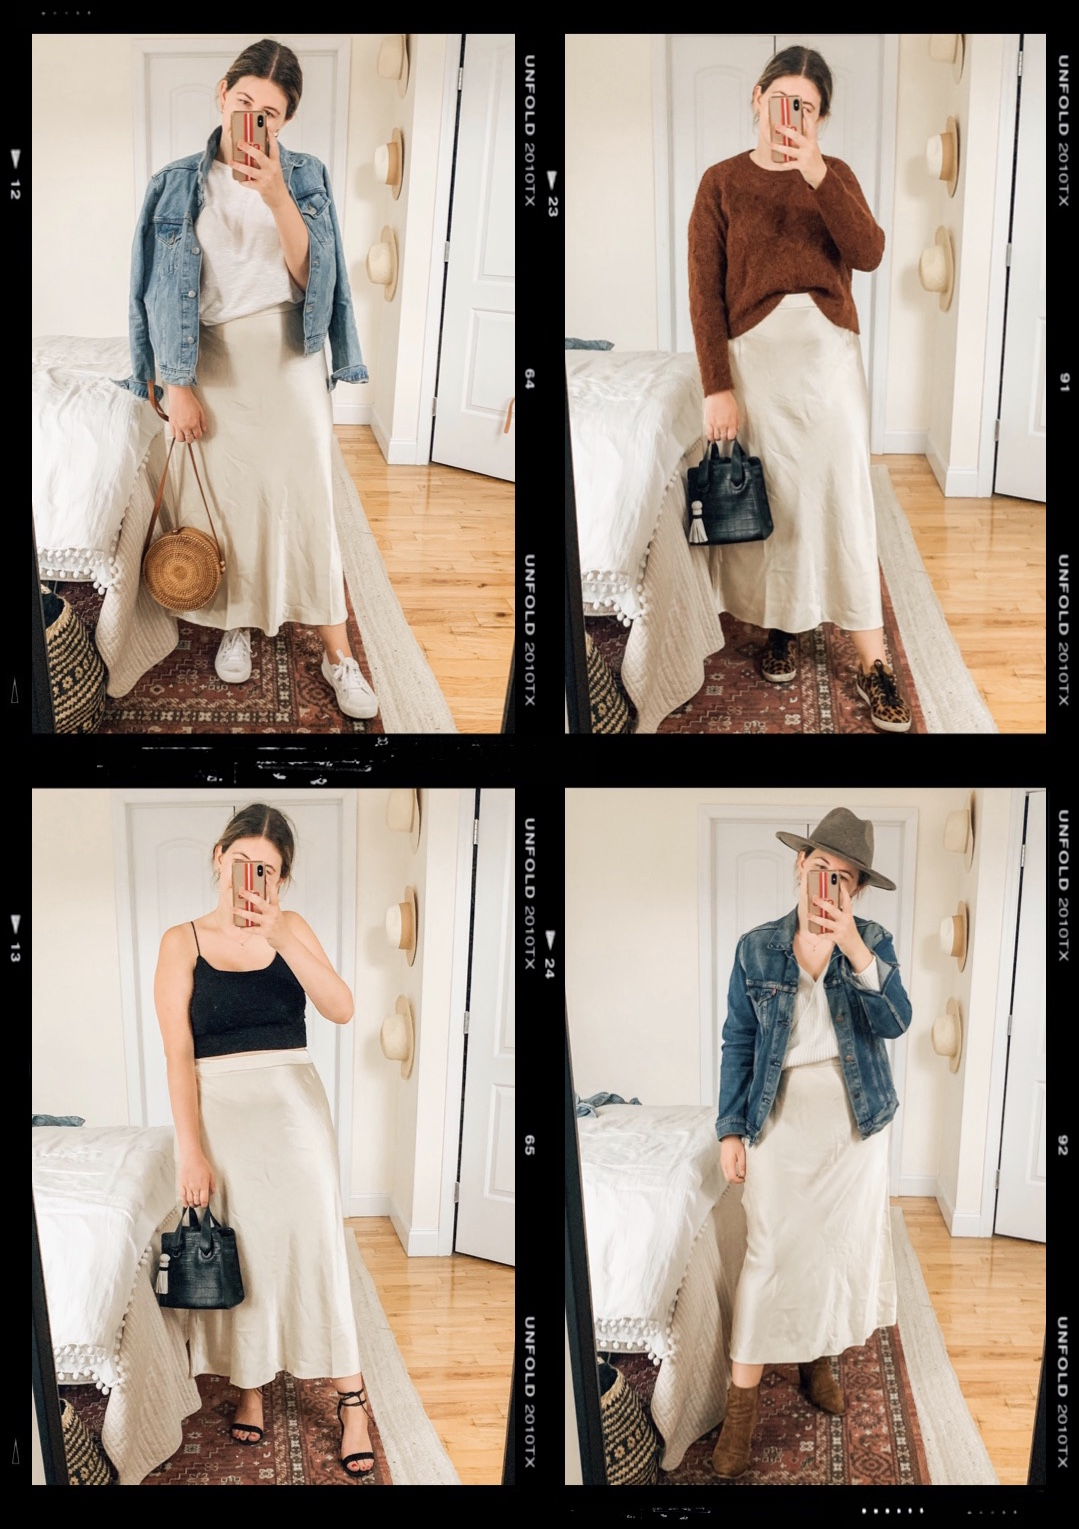 Silk Skirt Styled 5 Ways from Summer to Fall